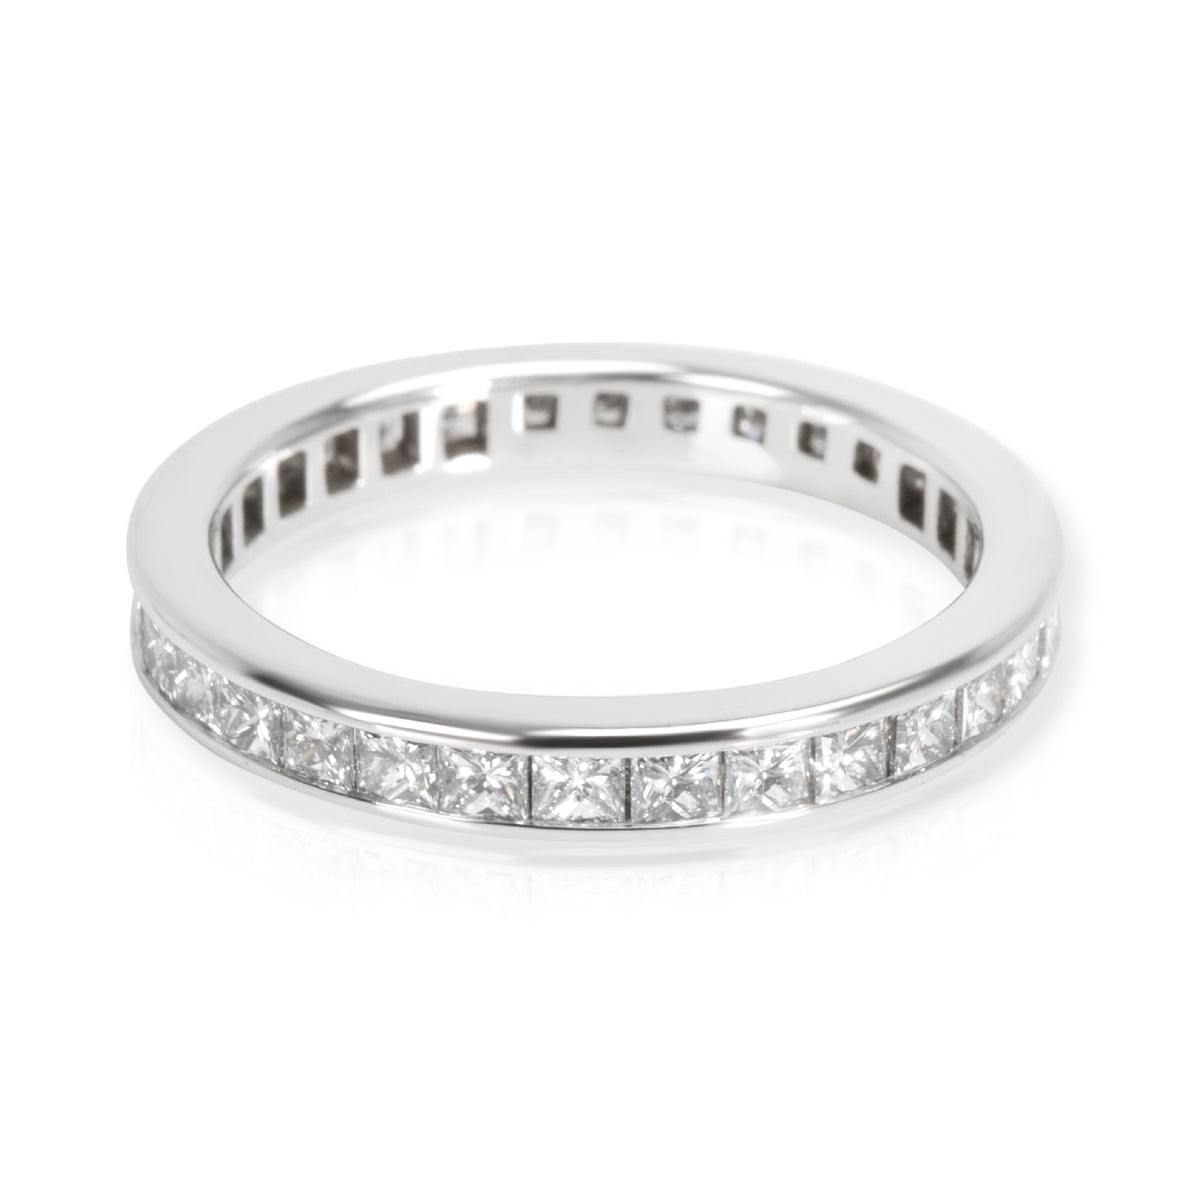 Tiffany & Co Channel Princess Diamond Eternity Wedding Band in Platinum 1.00ctw